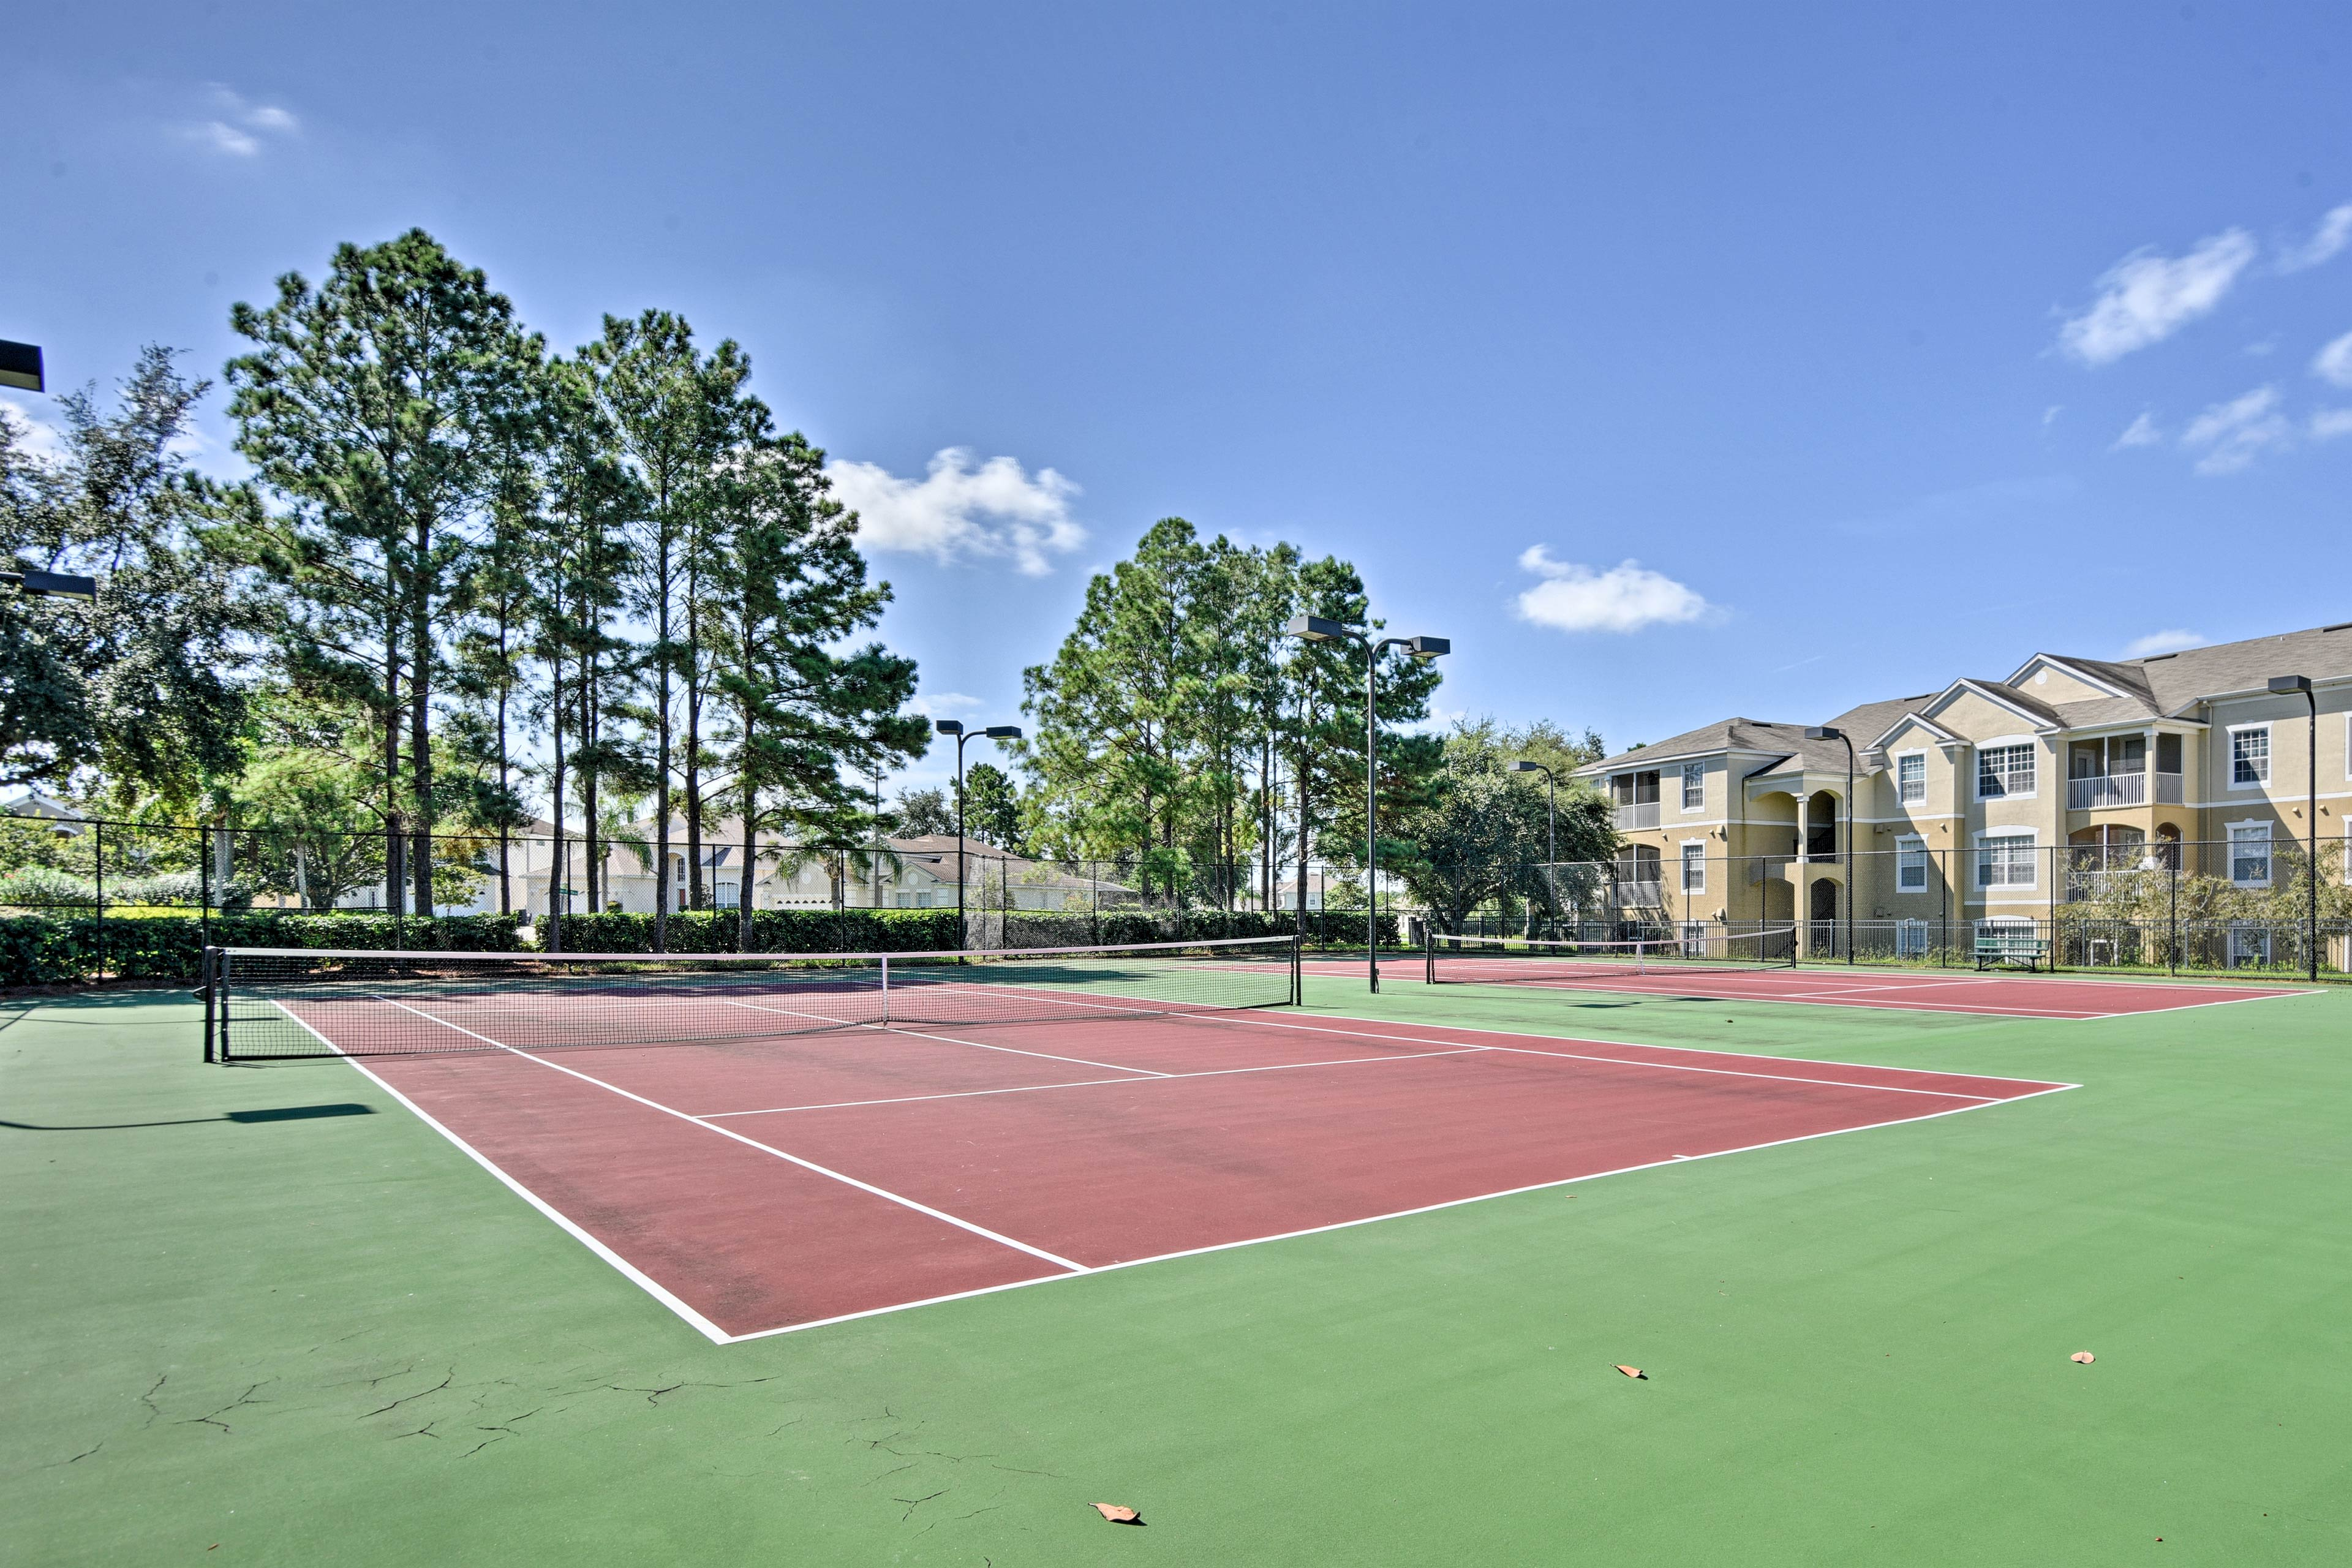 A friendly match of tennis is the perfect workout in the early afternoon.